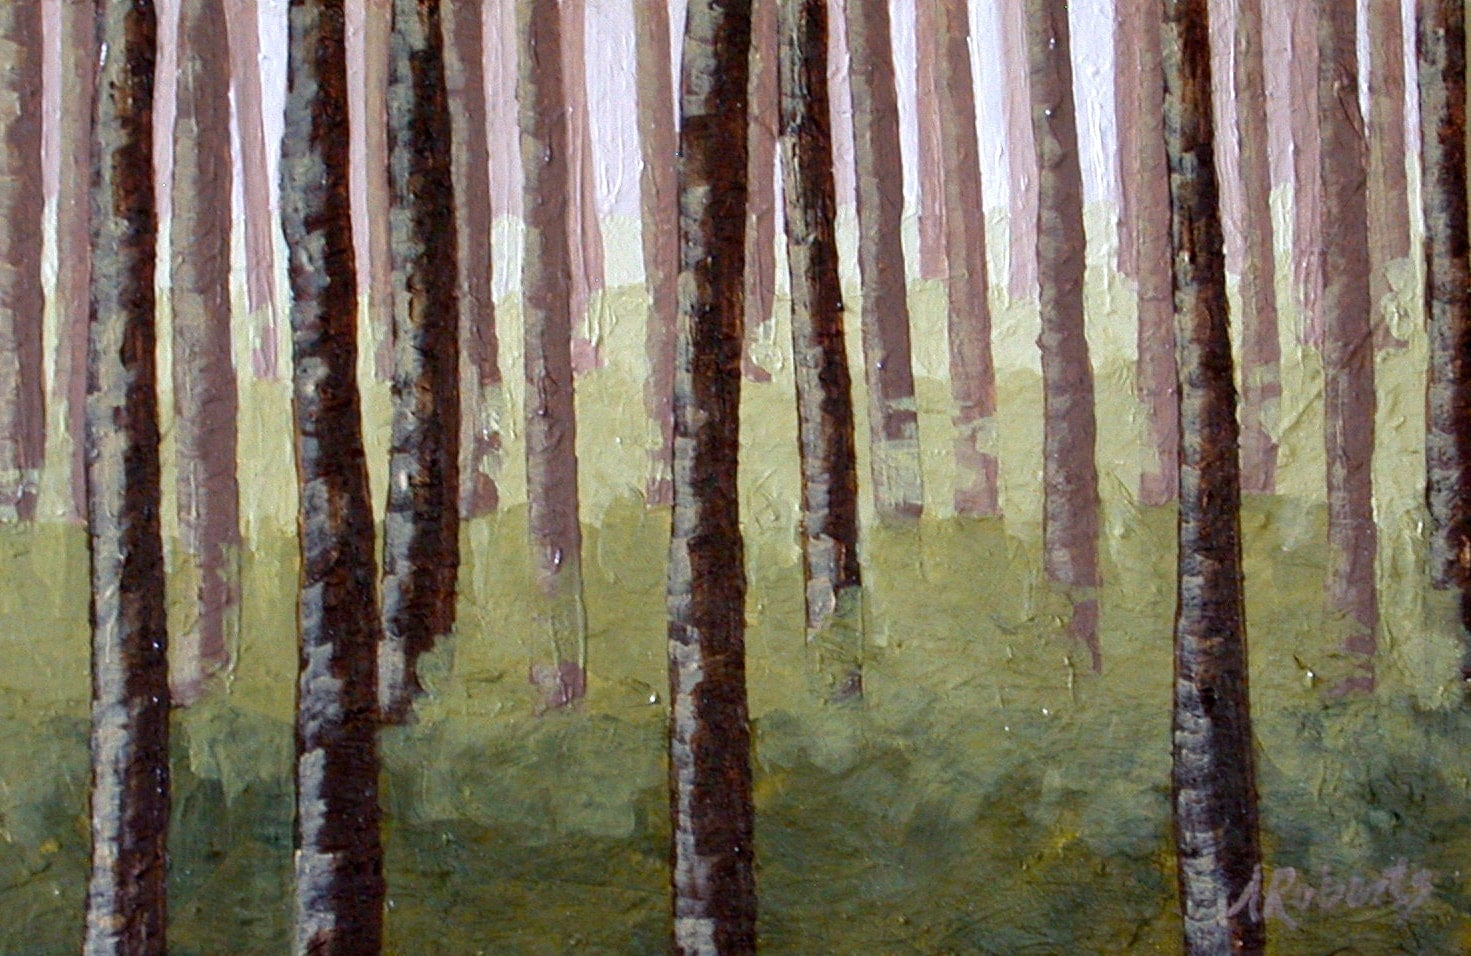 Sale enchanted forest original 4x6 acrylic forest painting for Painting a forest in acrylics